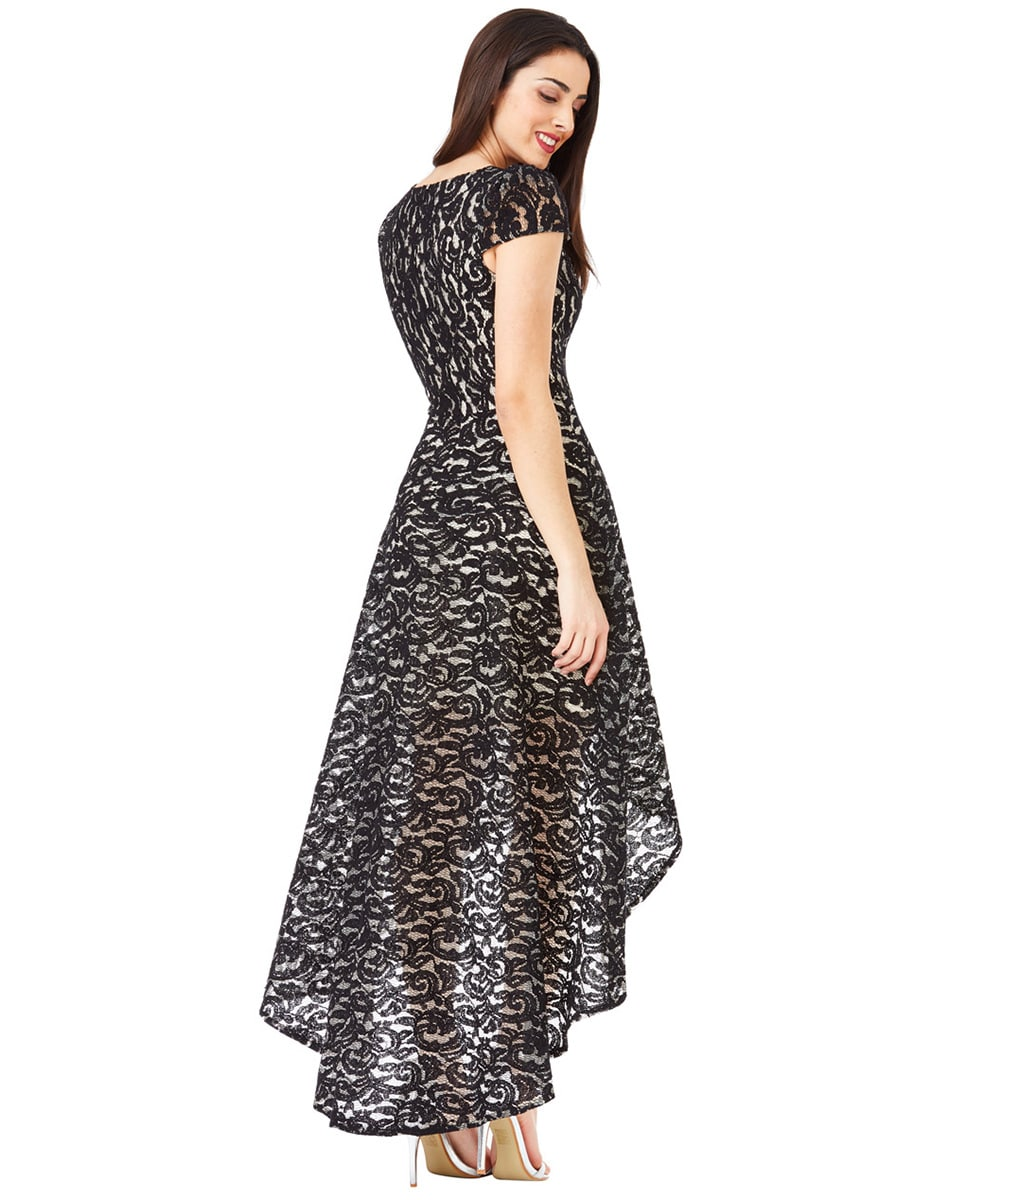 Alila-Hi-Lo-lace-cap-sleeve-dress-for-races-City-Goddess